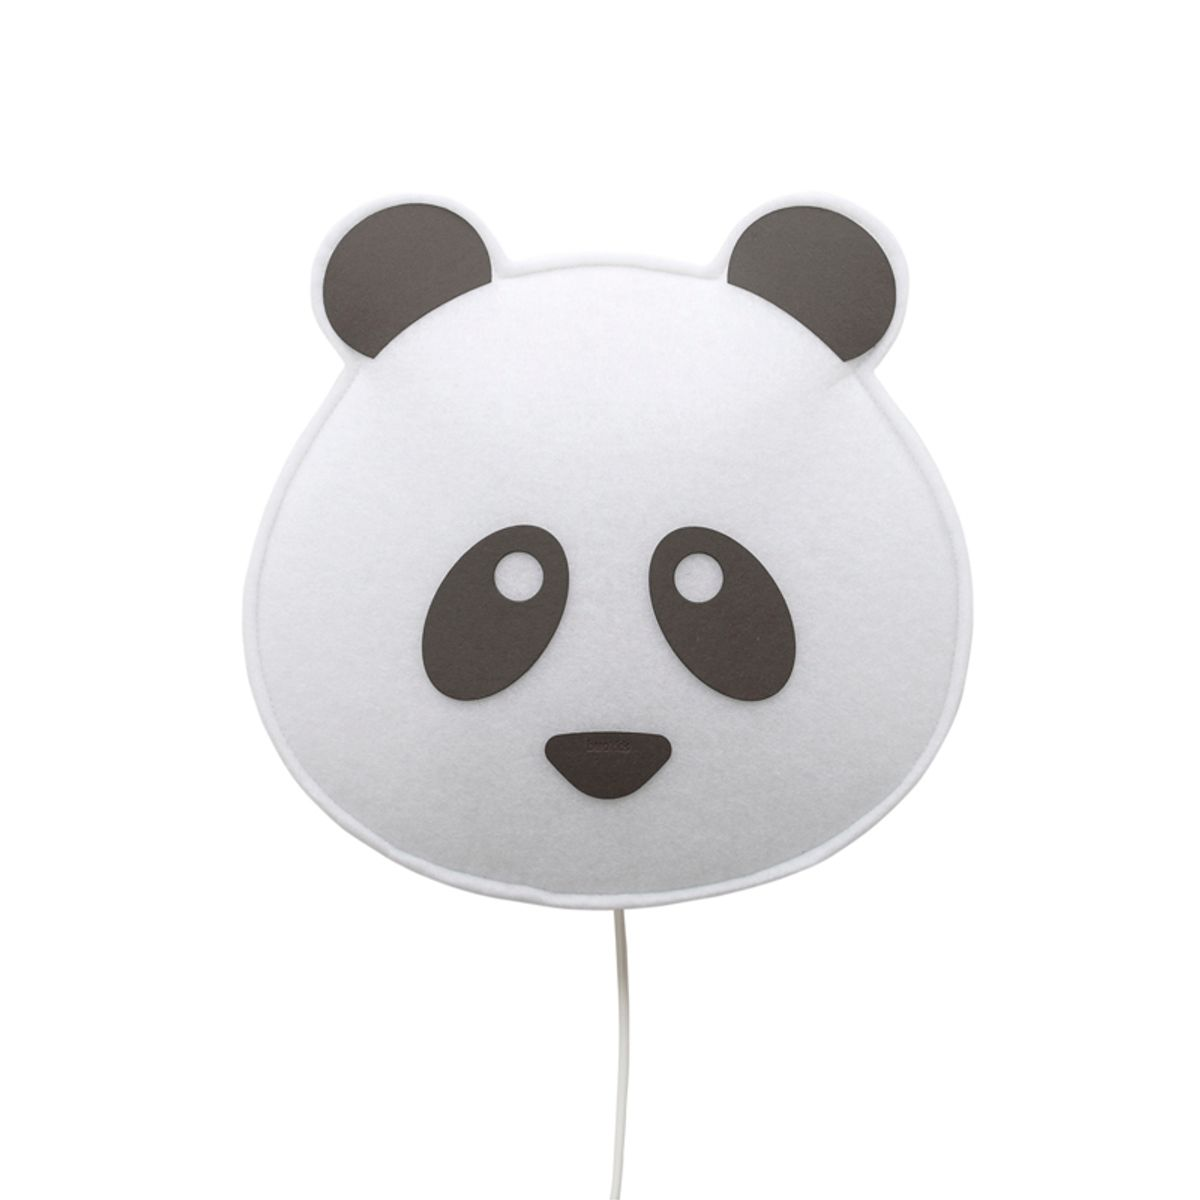 wandlampe panda mit kabel und stecker von buokids. Black Bedroom Furniture Sets. Home Design Ideas